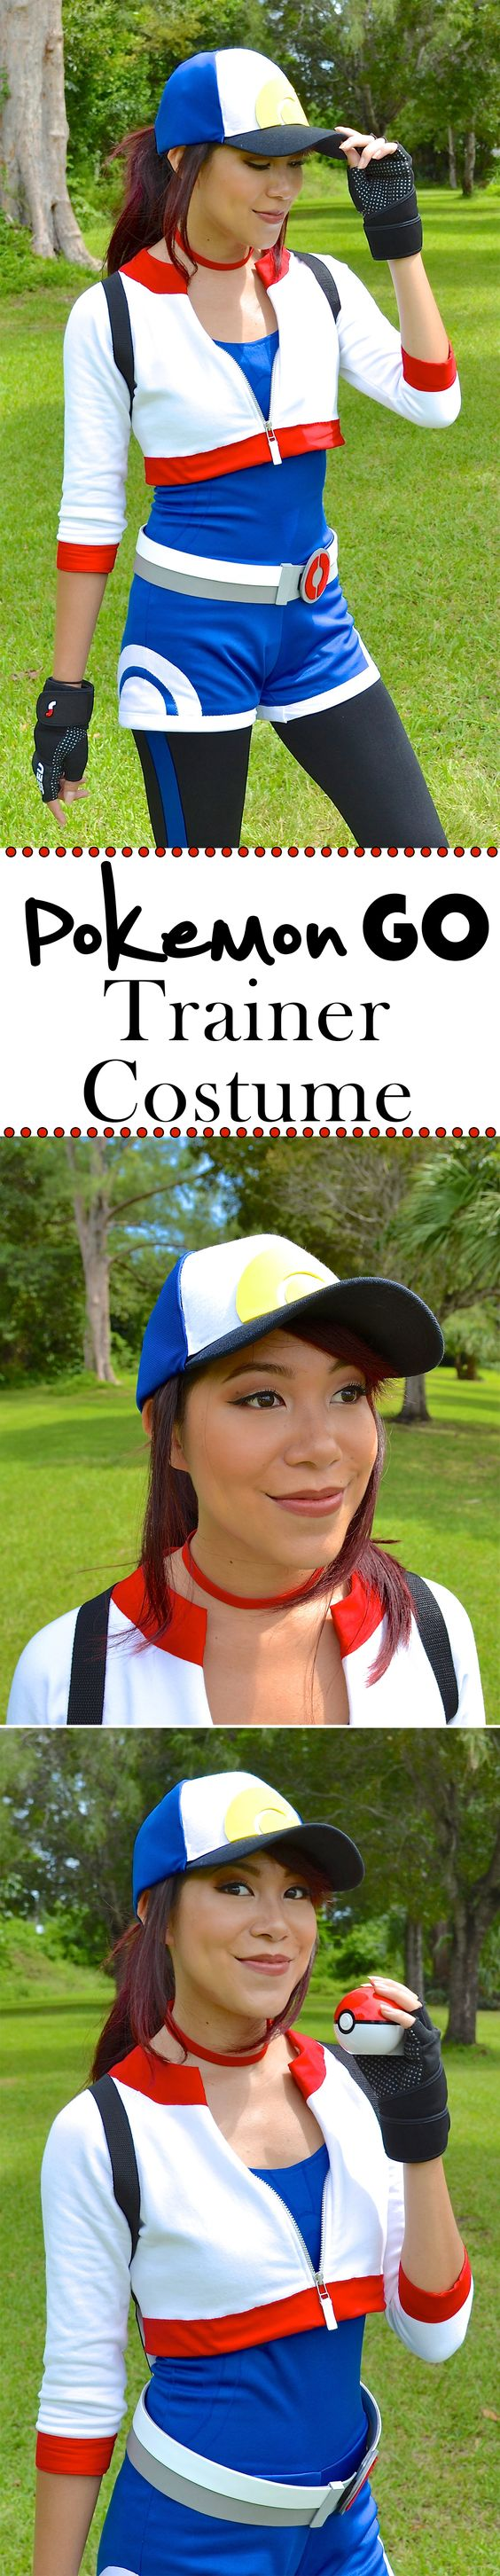 Pokemon Go Trainer Costume.